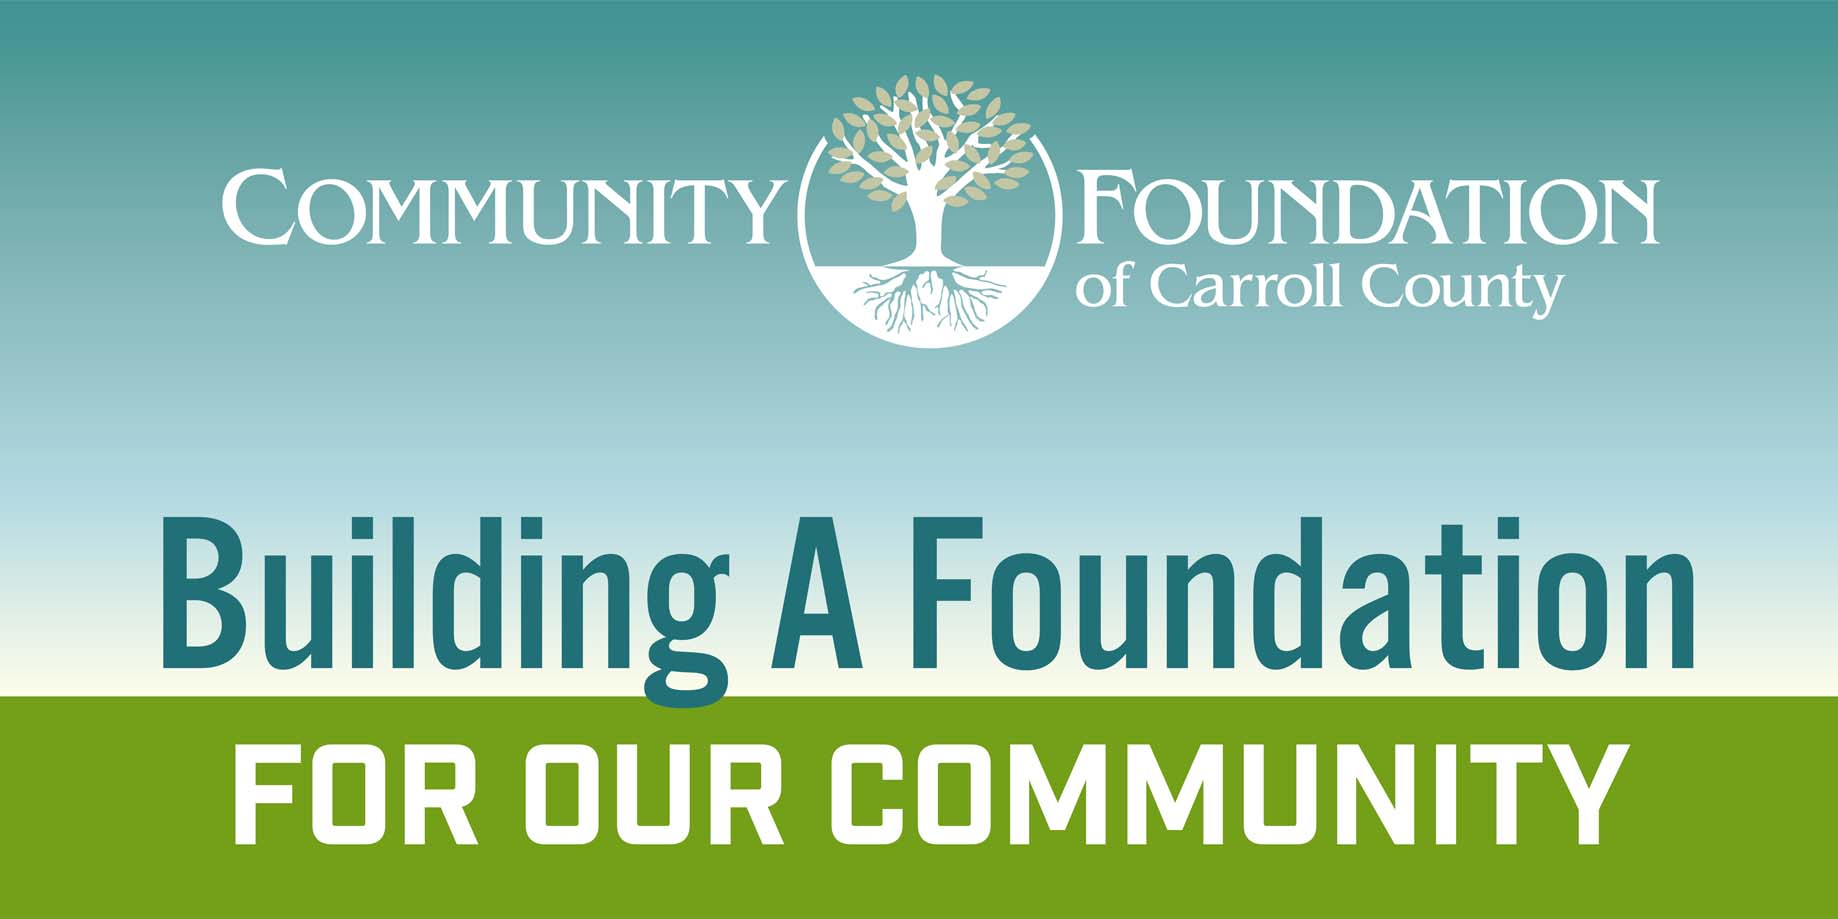 Building a Foundation for Our Community